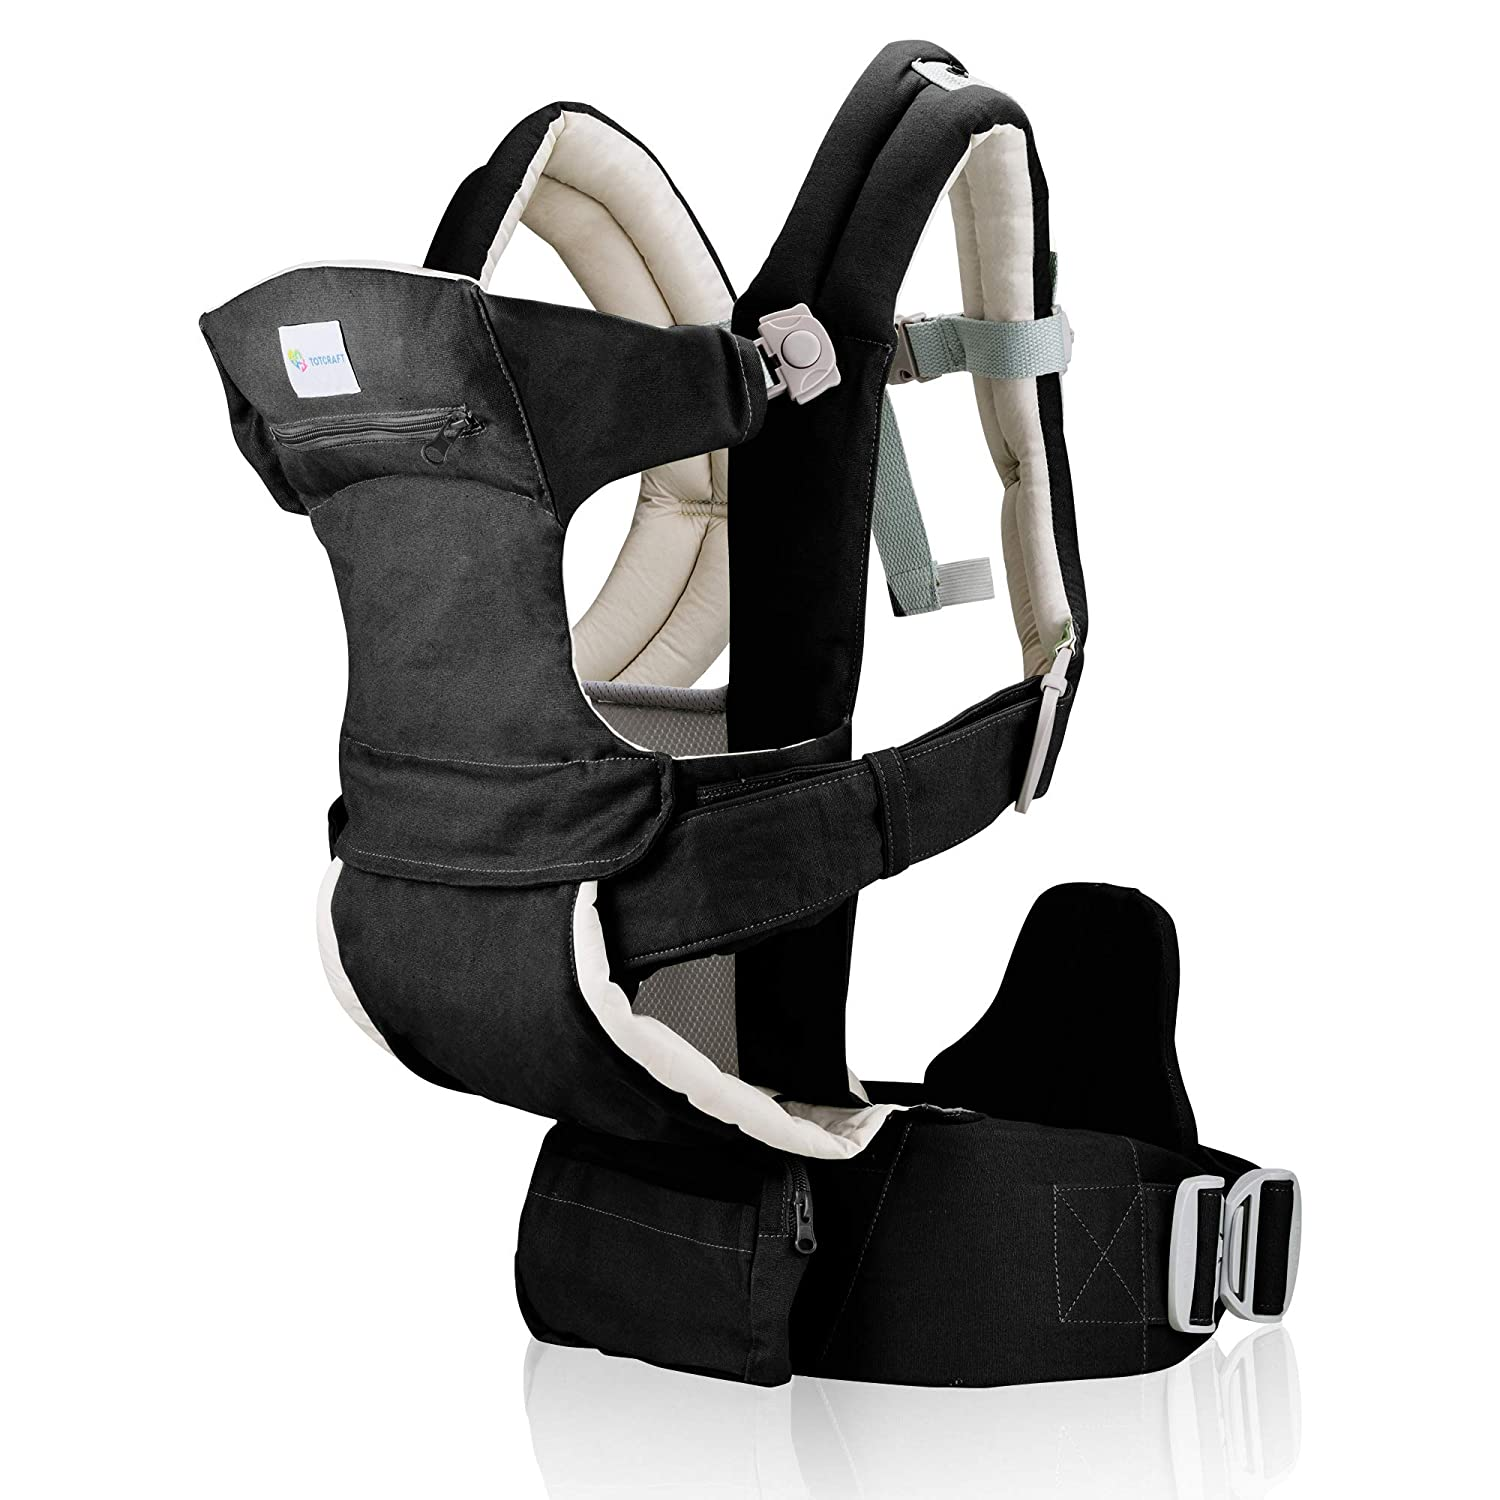 Baby Carrier New Born to Toddler –Infant & Child Carrier with Lumbar Support for Men & Women –Baby Hiking Backpack Carrier-All Carry Positions Baby Holder & Sling Carrier - Cotton (Black Camel)